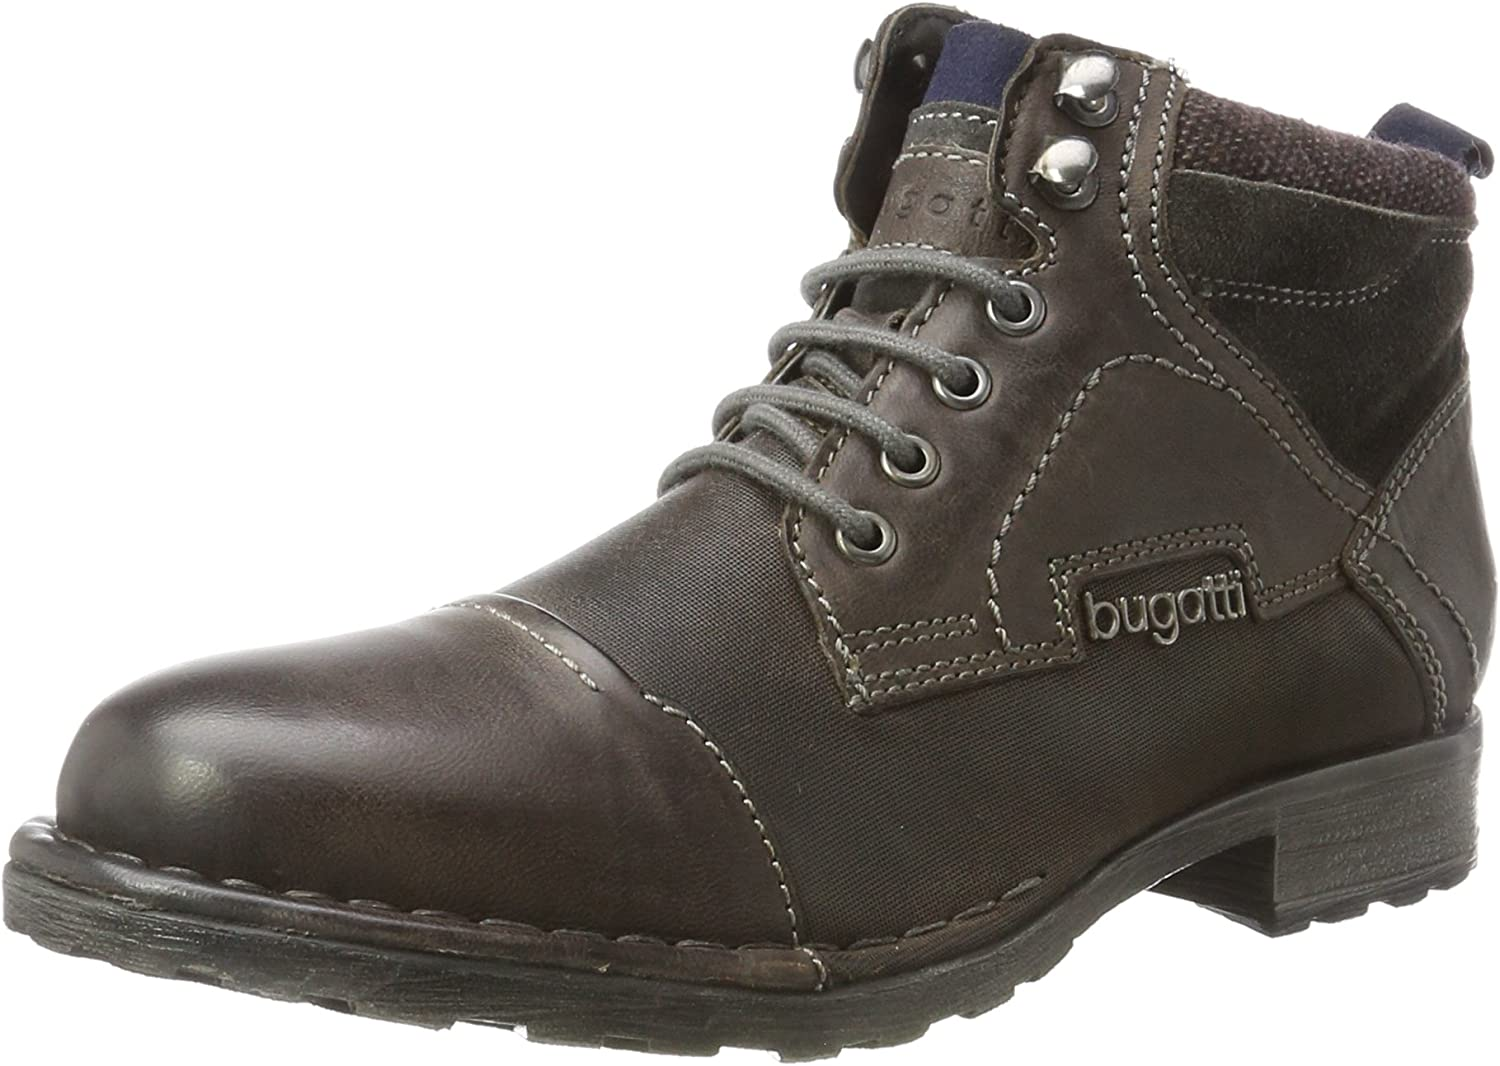 Bugatti Men Boots Grey, (Dark Grey) 321343503200-1100